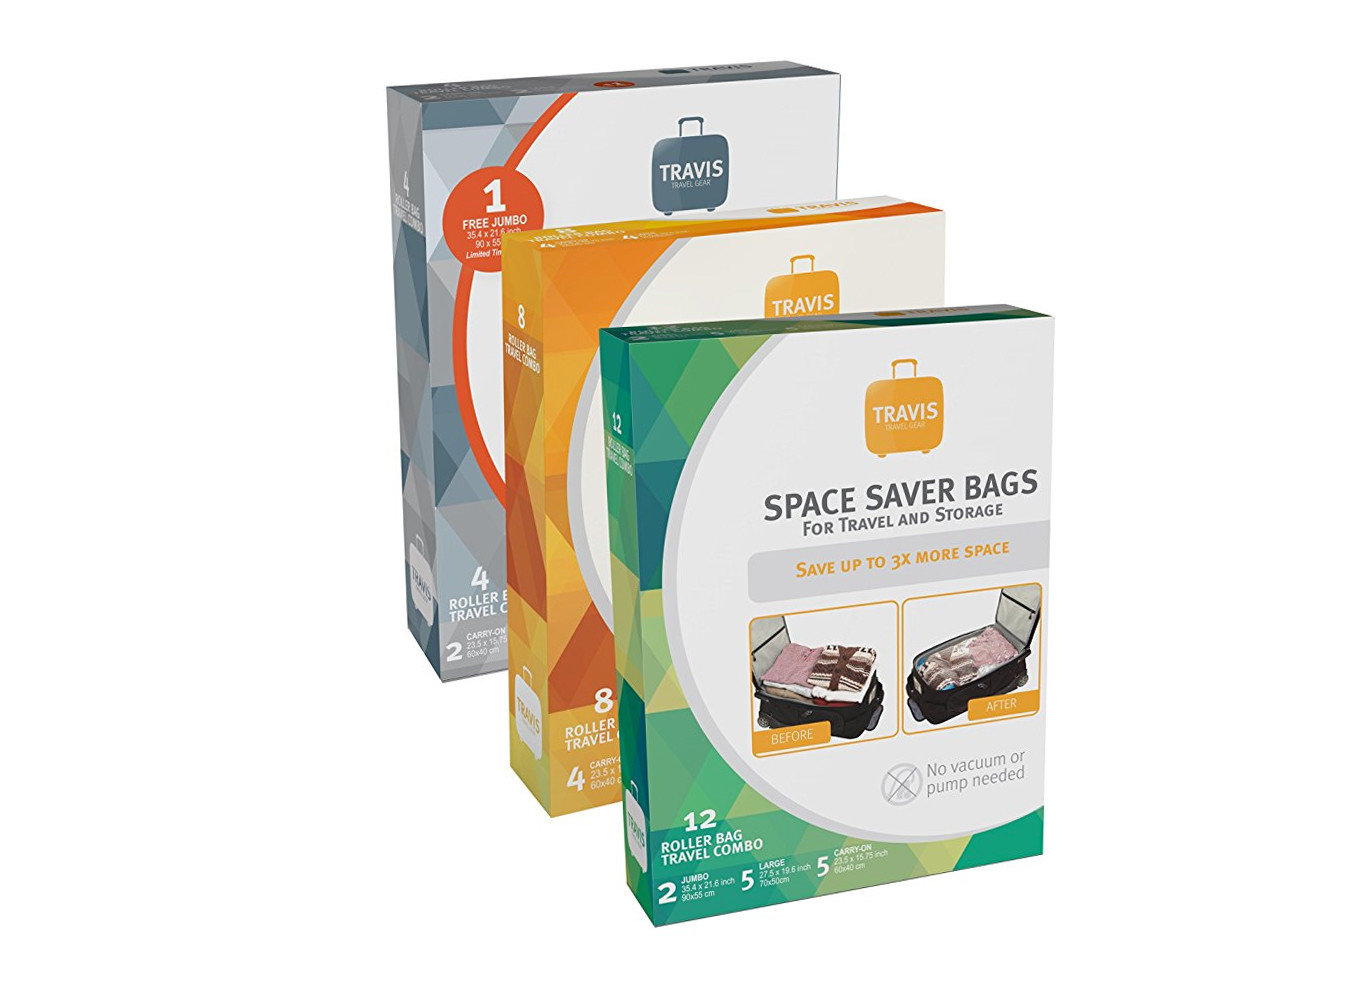 Packing Tips Travel Tips product carton product design packaging and labeling brand box